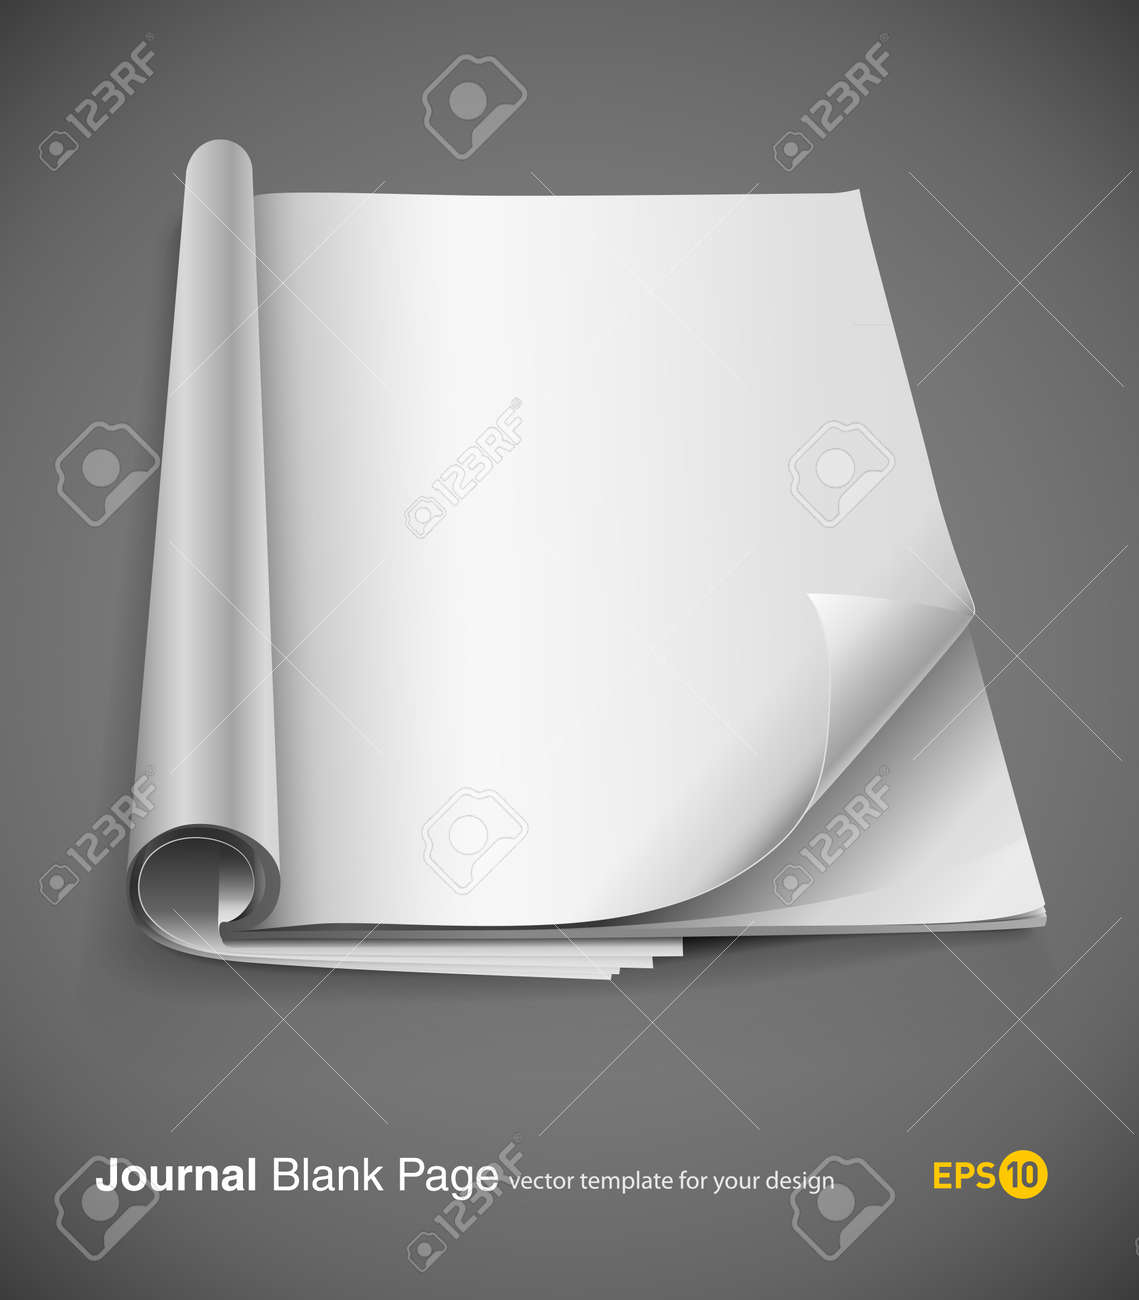 journal page with design layout vector illustration on gray background. eps10 Stock Vector - 8732307